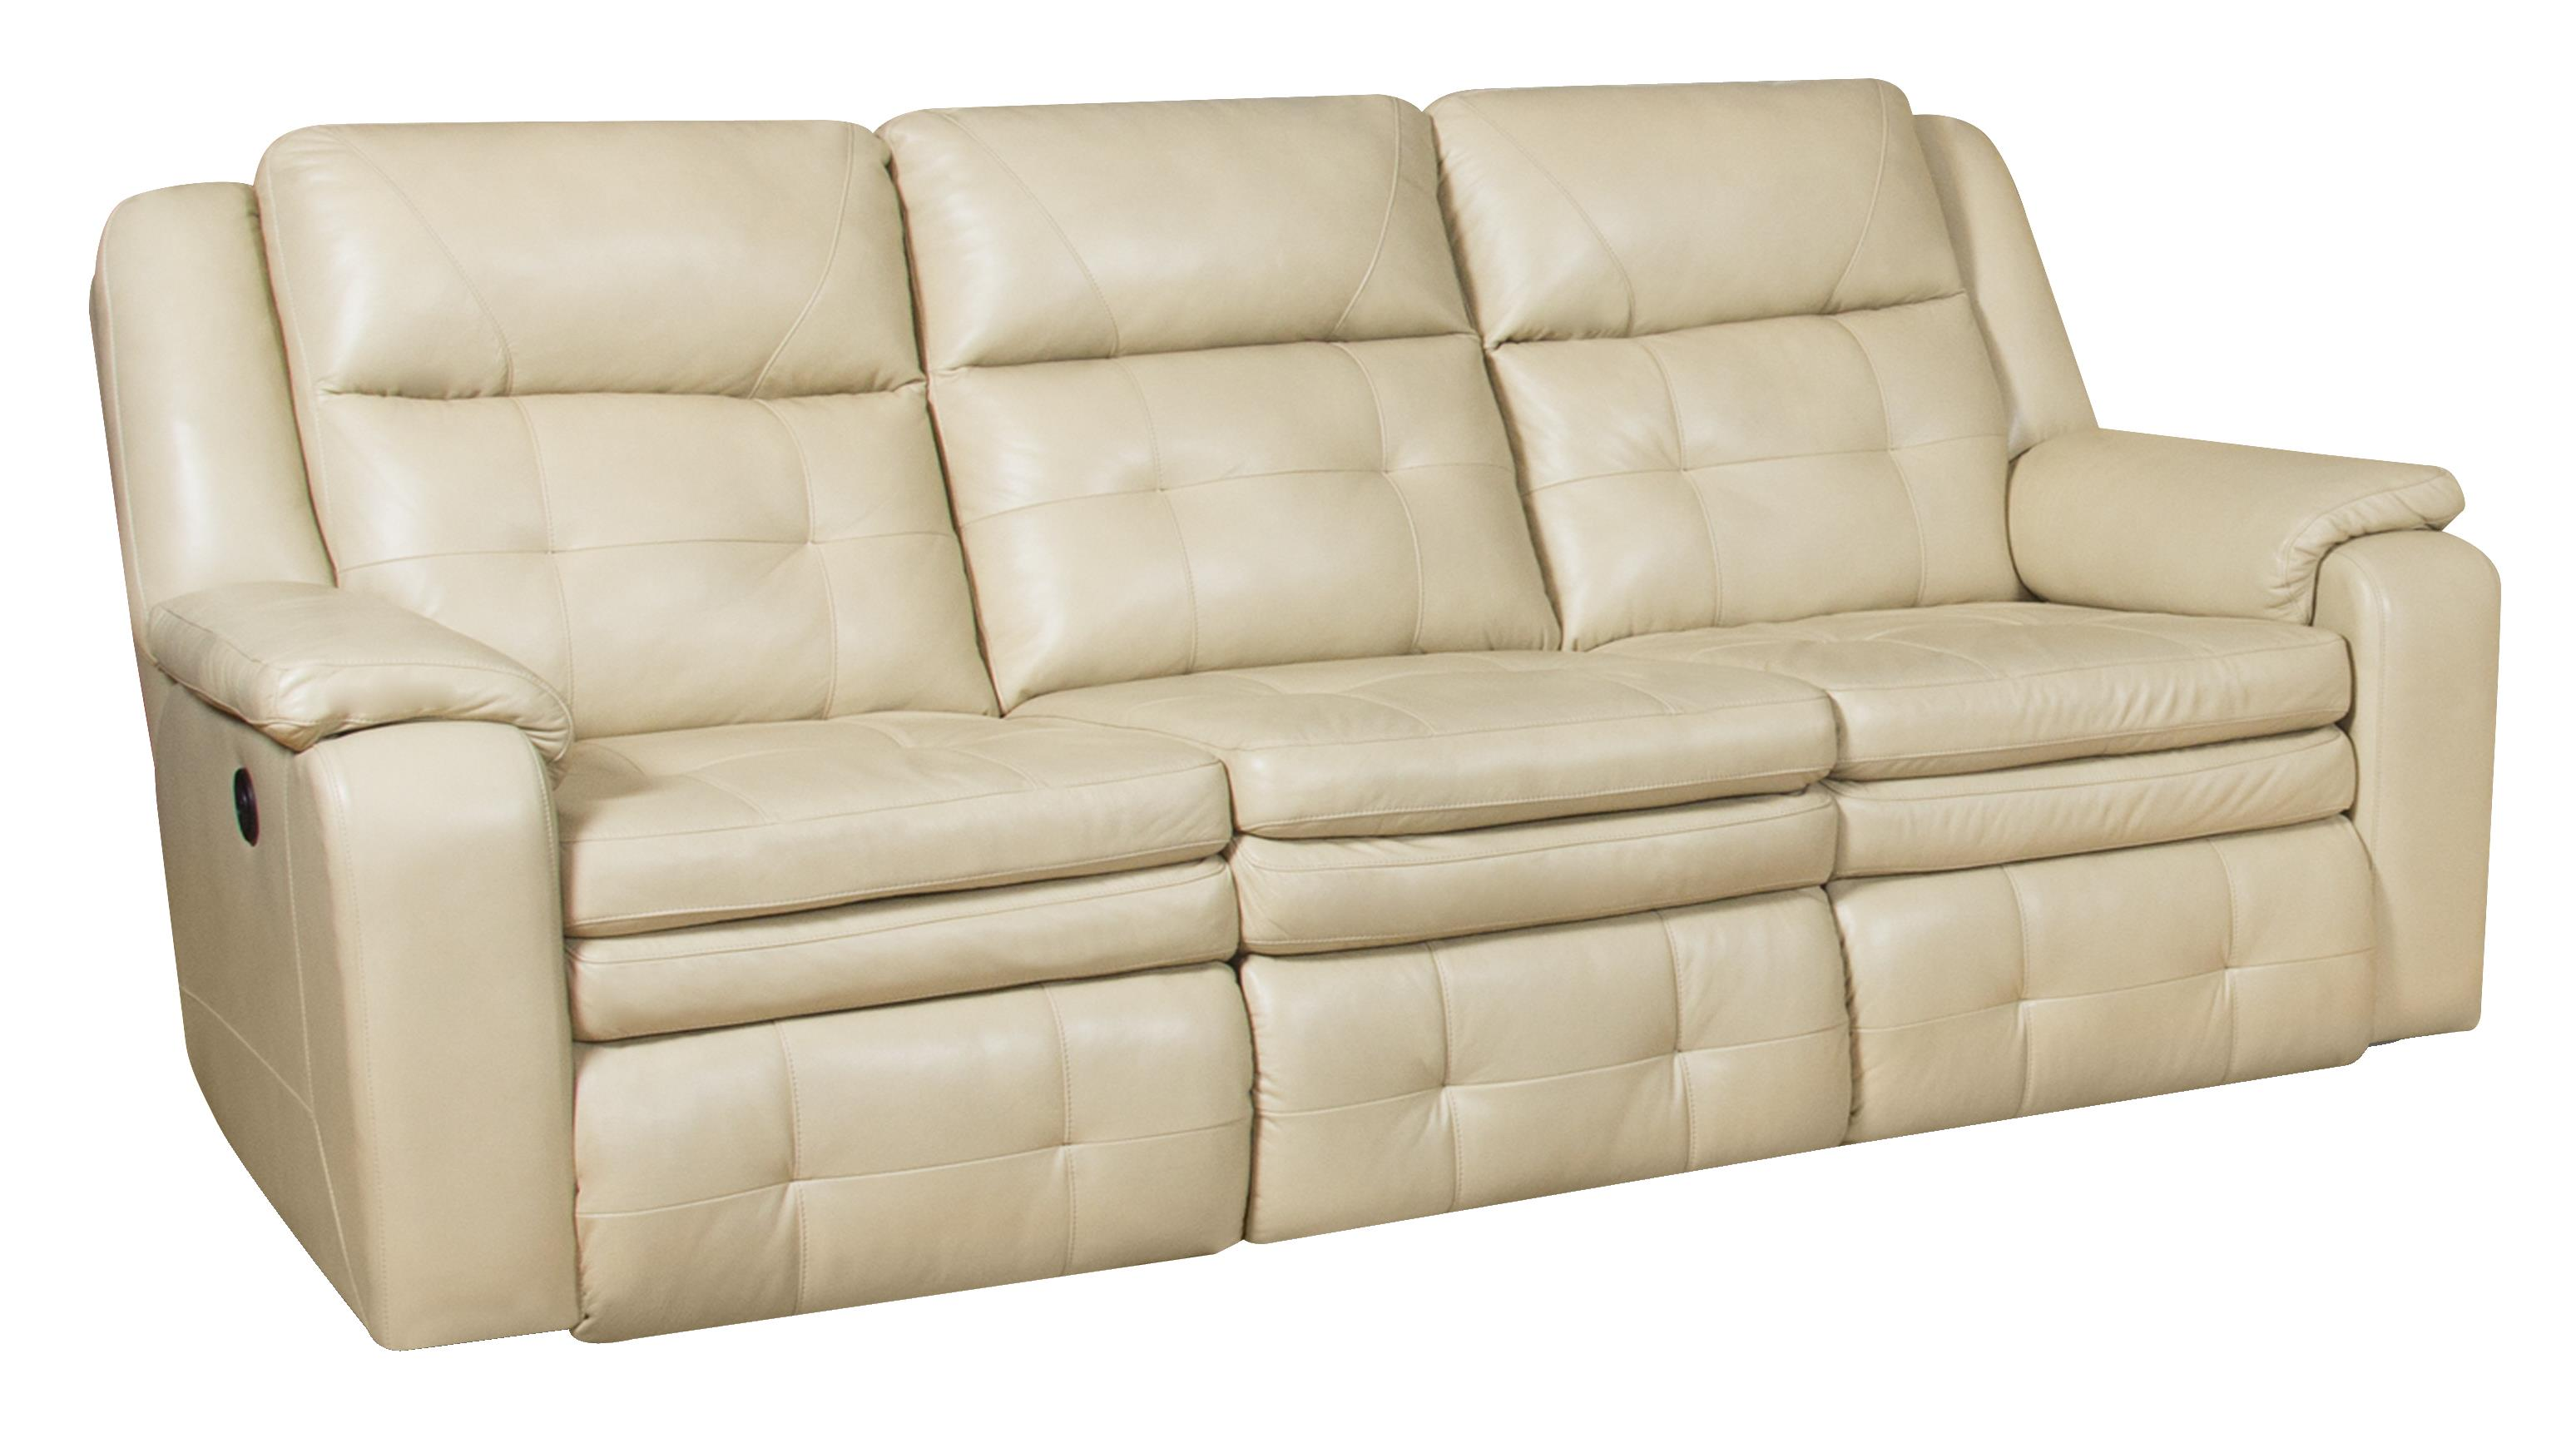 Inspire Double Reclining Sofa by Southern Motion at Johnny Janosik